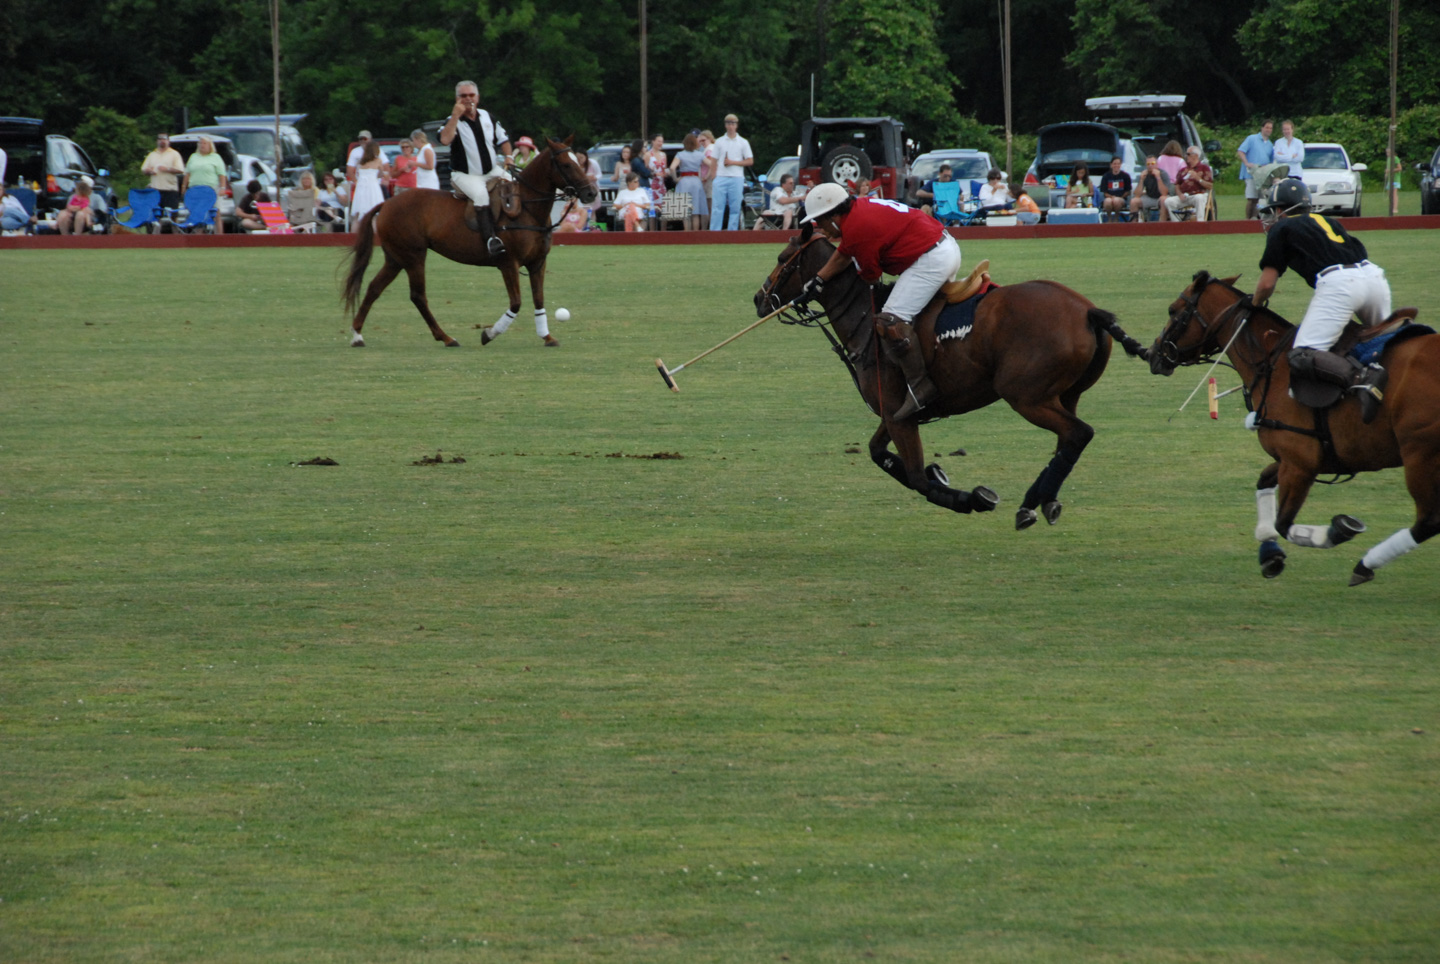 Newport Polo match